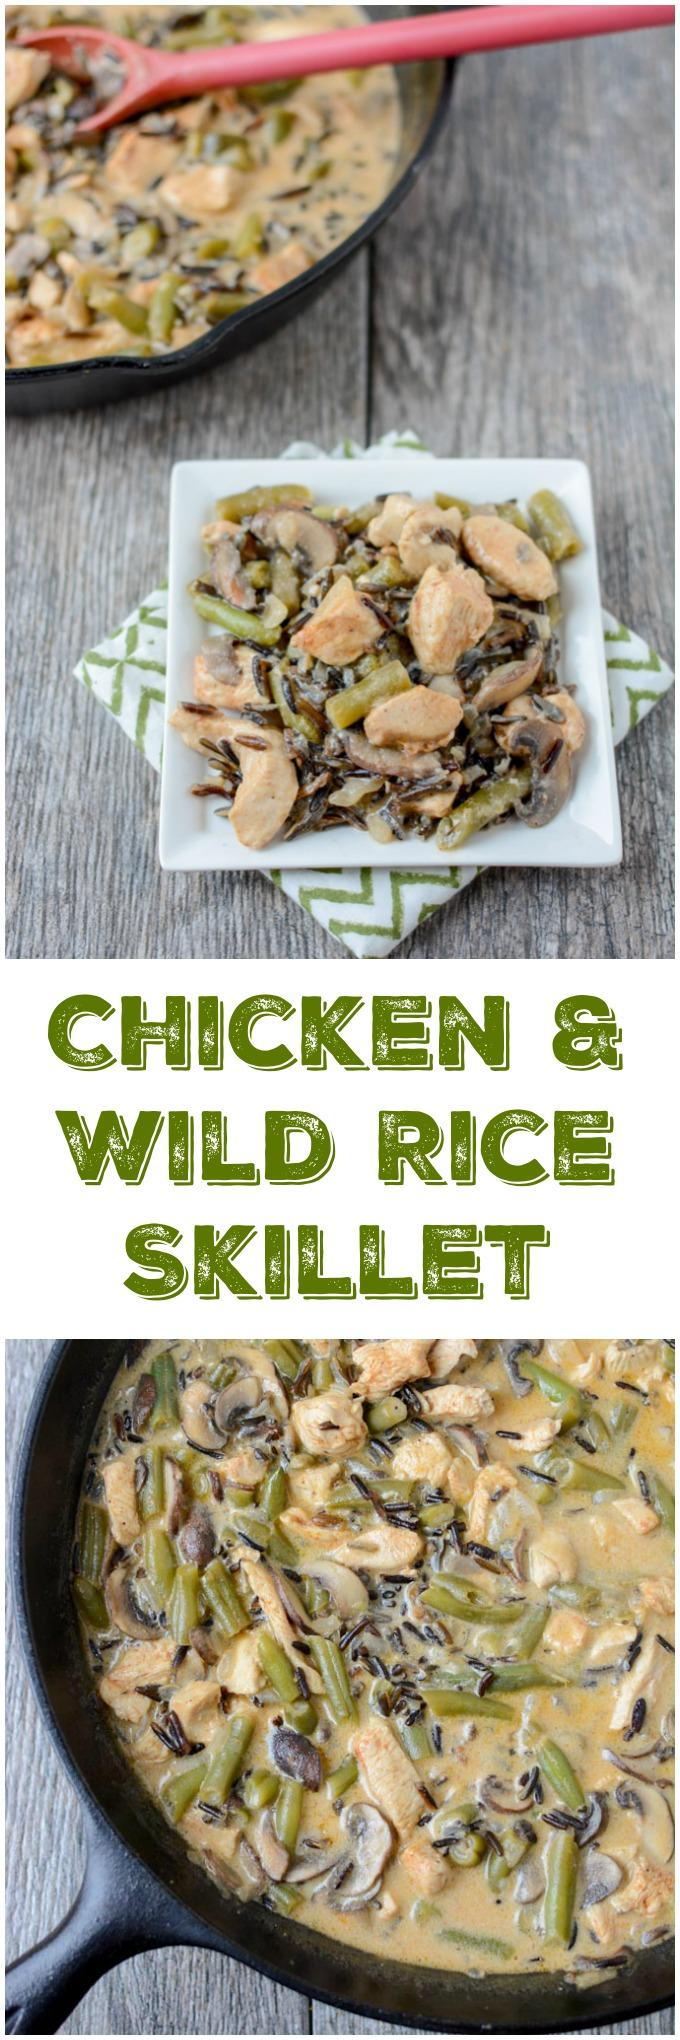 This gluten-free Creamy Chicken and Wild Rice Skillet recipe is the perfect dinner for a busy night. It's quick, healthy and packed with protein and vegetables.